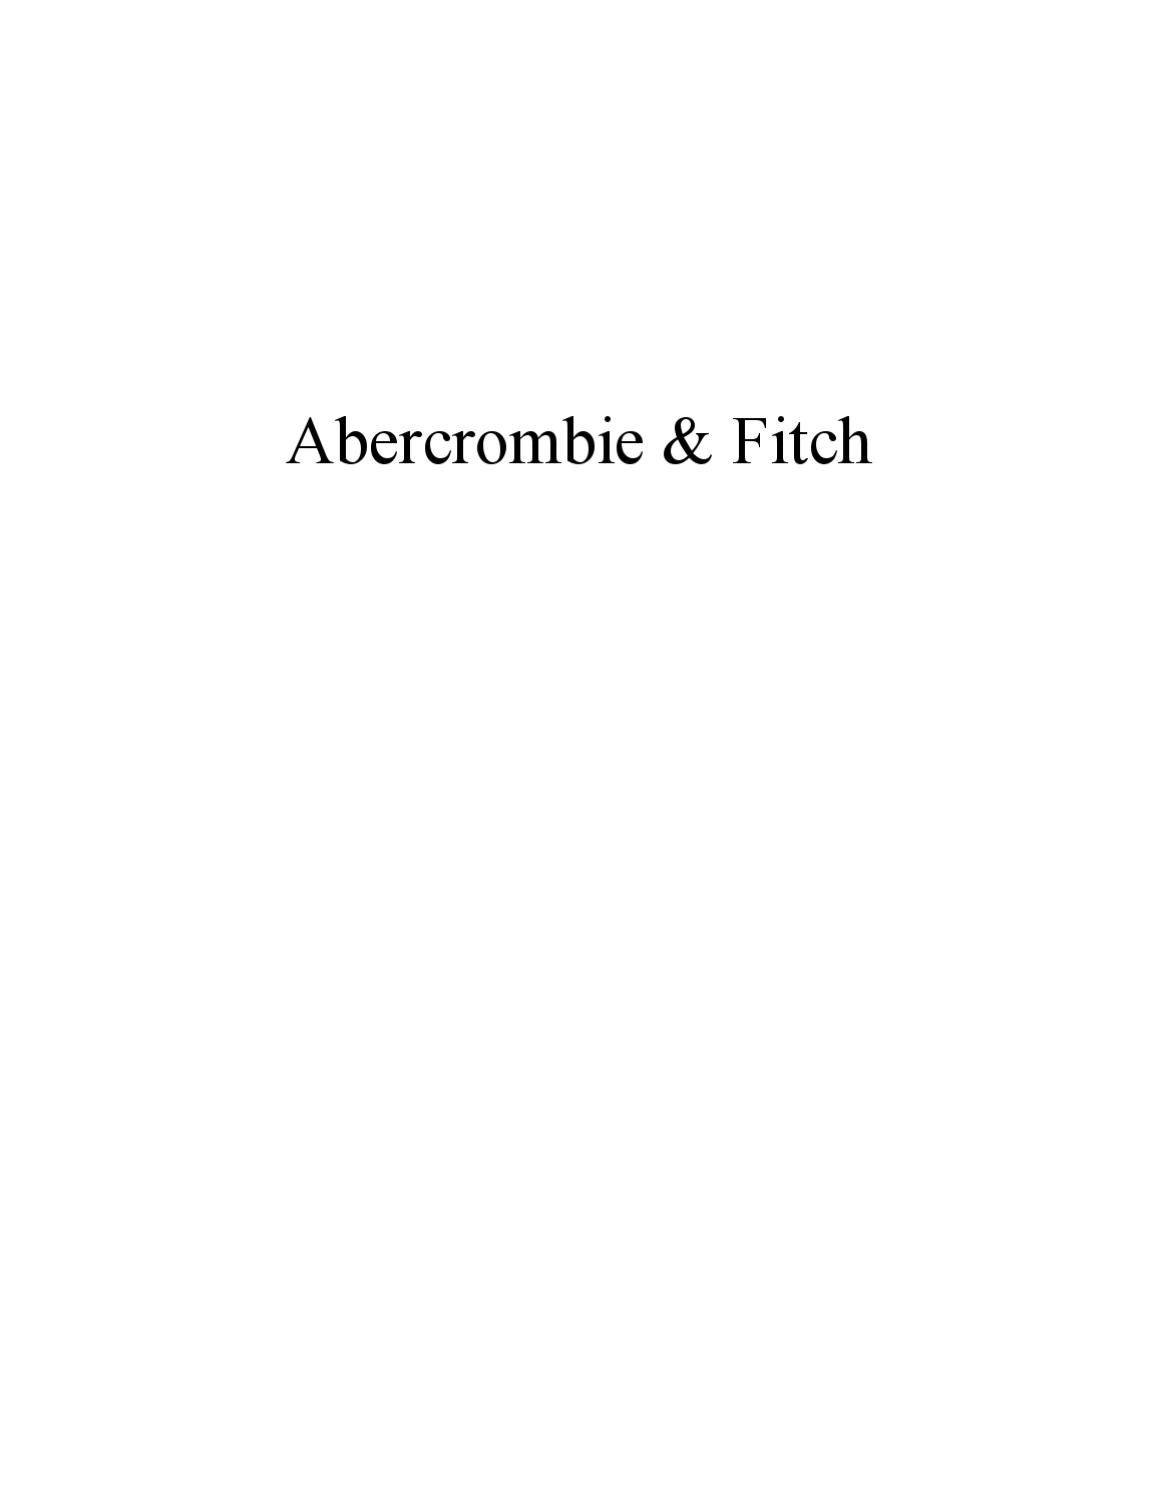 abercrombie fitchs greatest organizational strengths Abercrombie & fitch's greatest organizational strength is their clothing line they are well-known all over the world and appeal to young buyers they have branded themselves as a leader in.